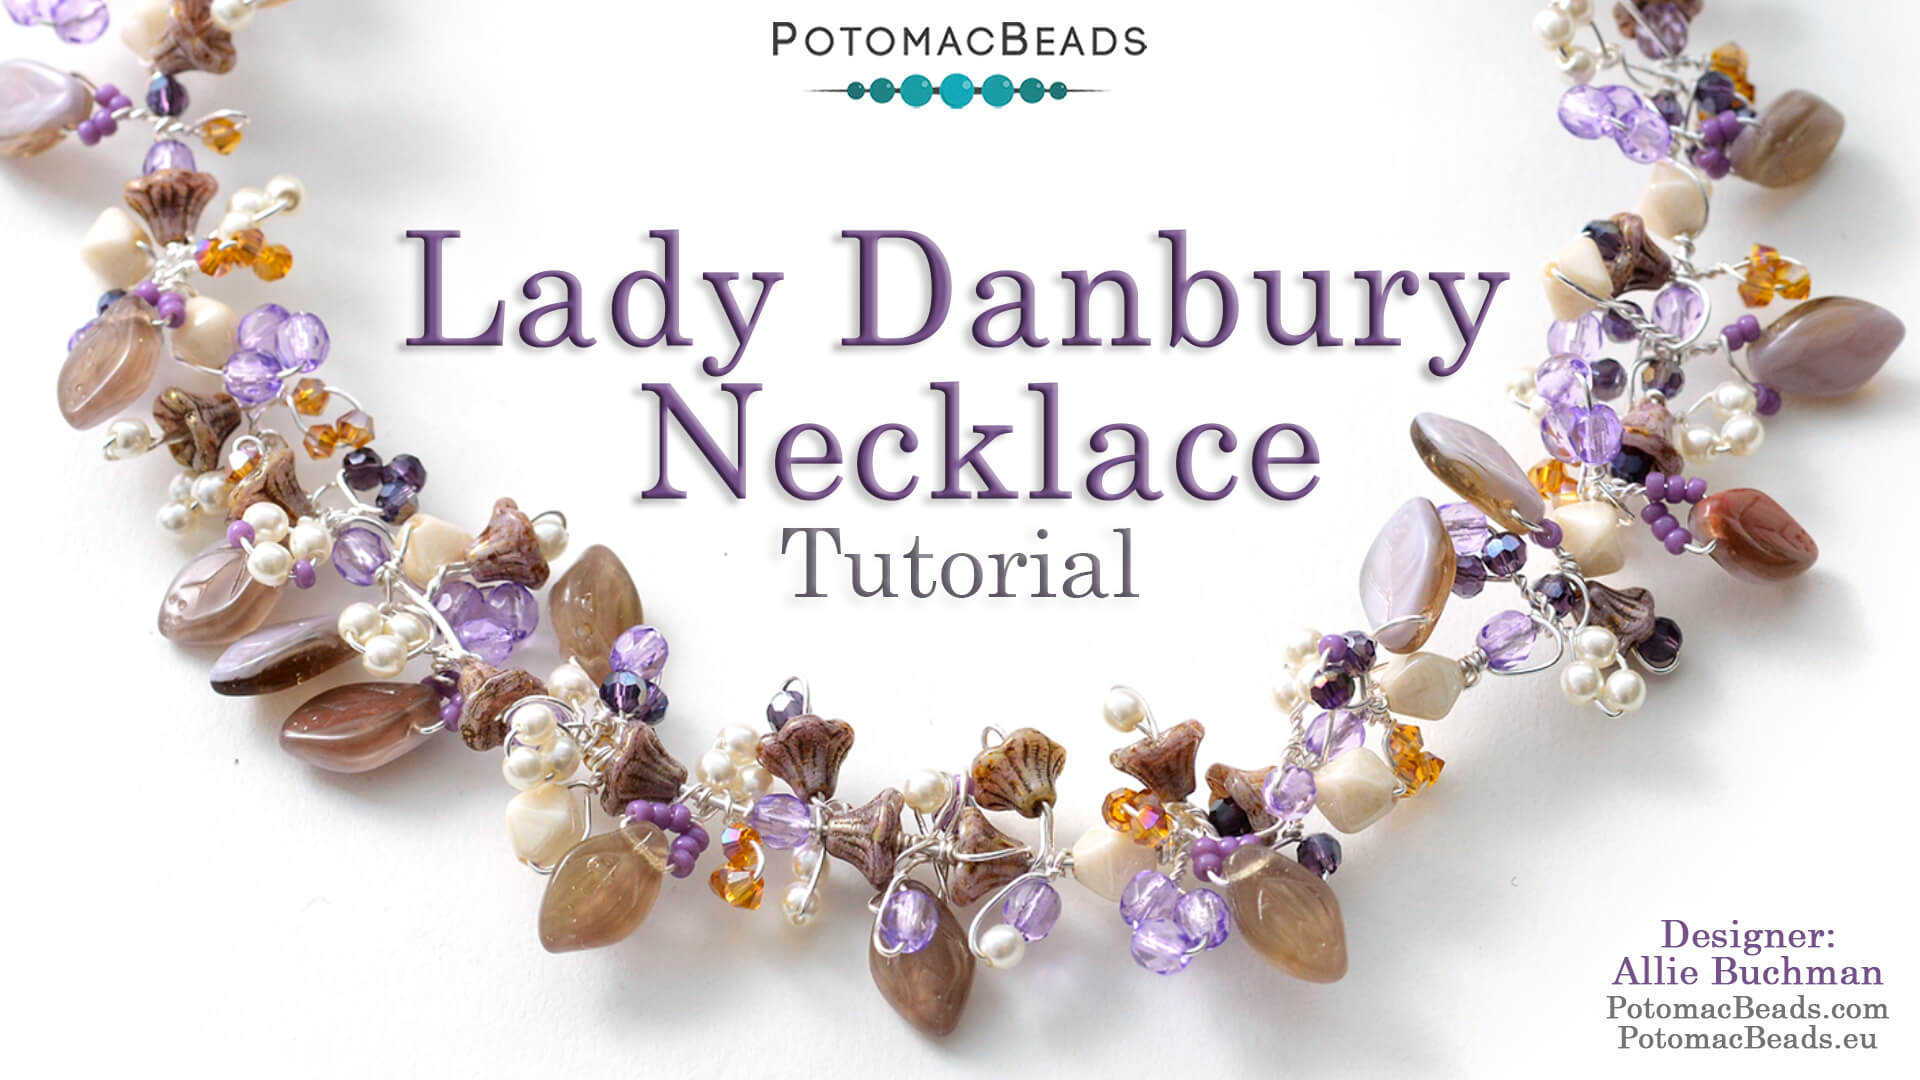 How to Bead Jewelry / Videos Sorted by Beads / Pearl Videos (Czech, Freshwater, Potomac Pearls) / Lady Danbury Necklace Tutorial